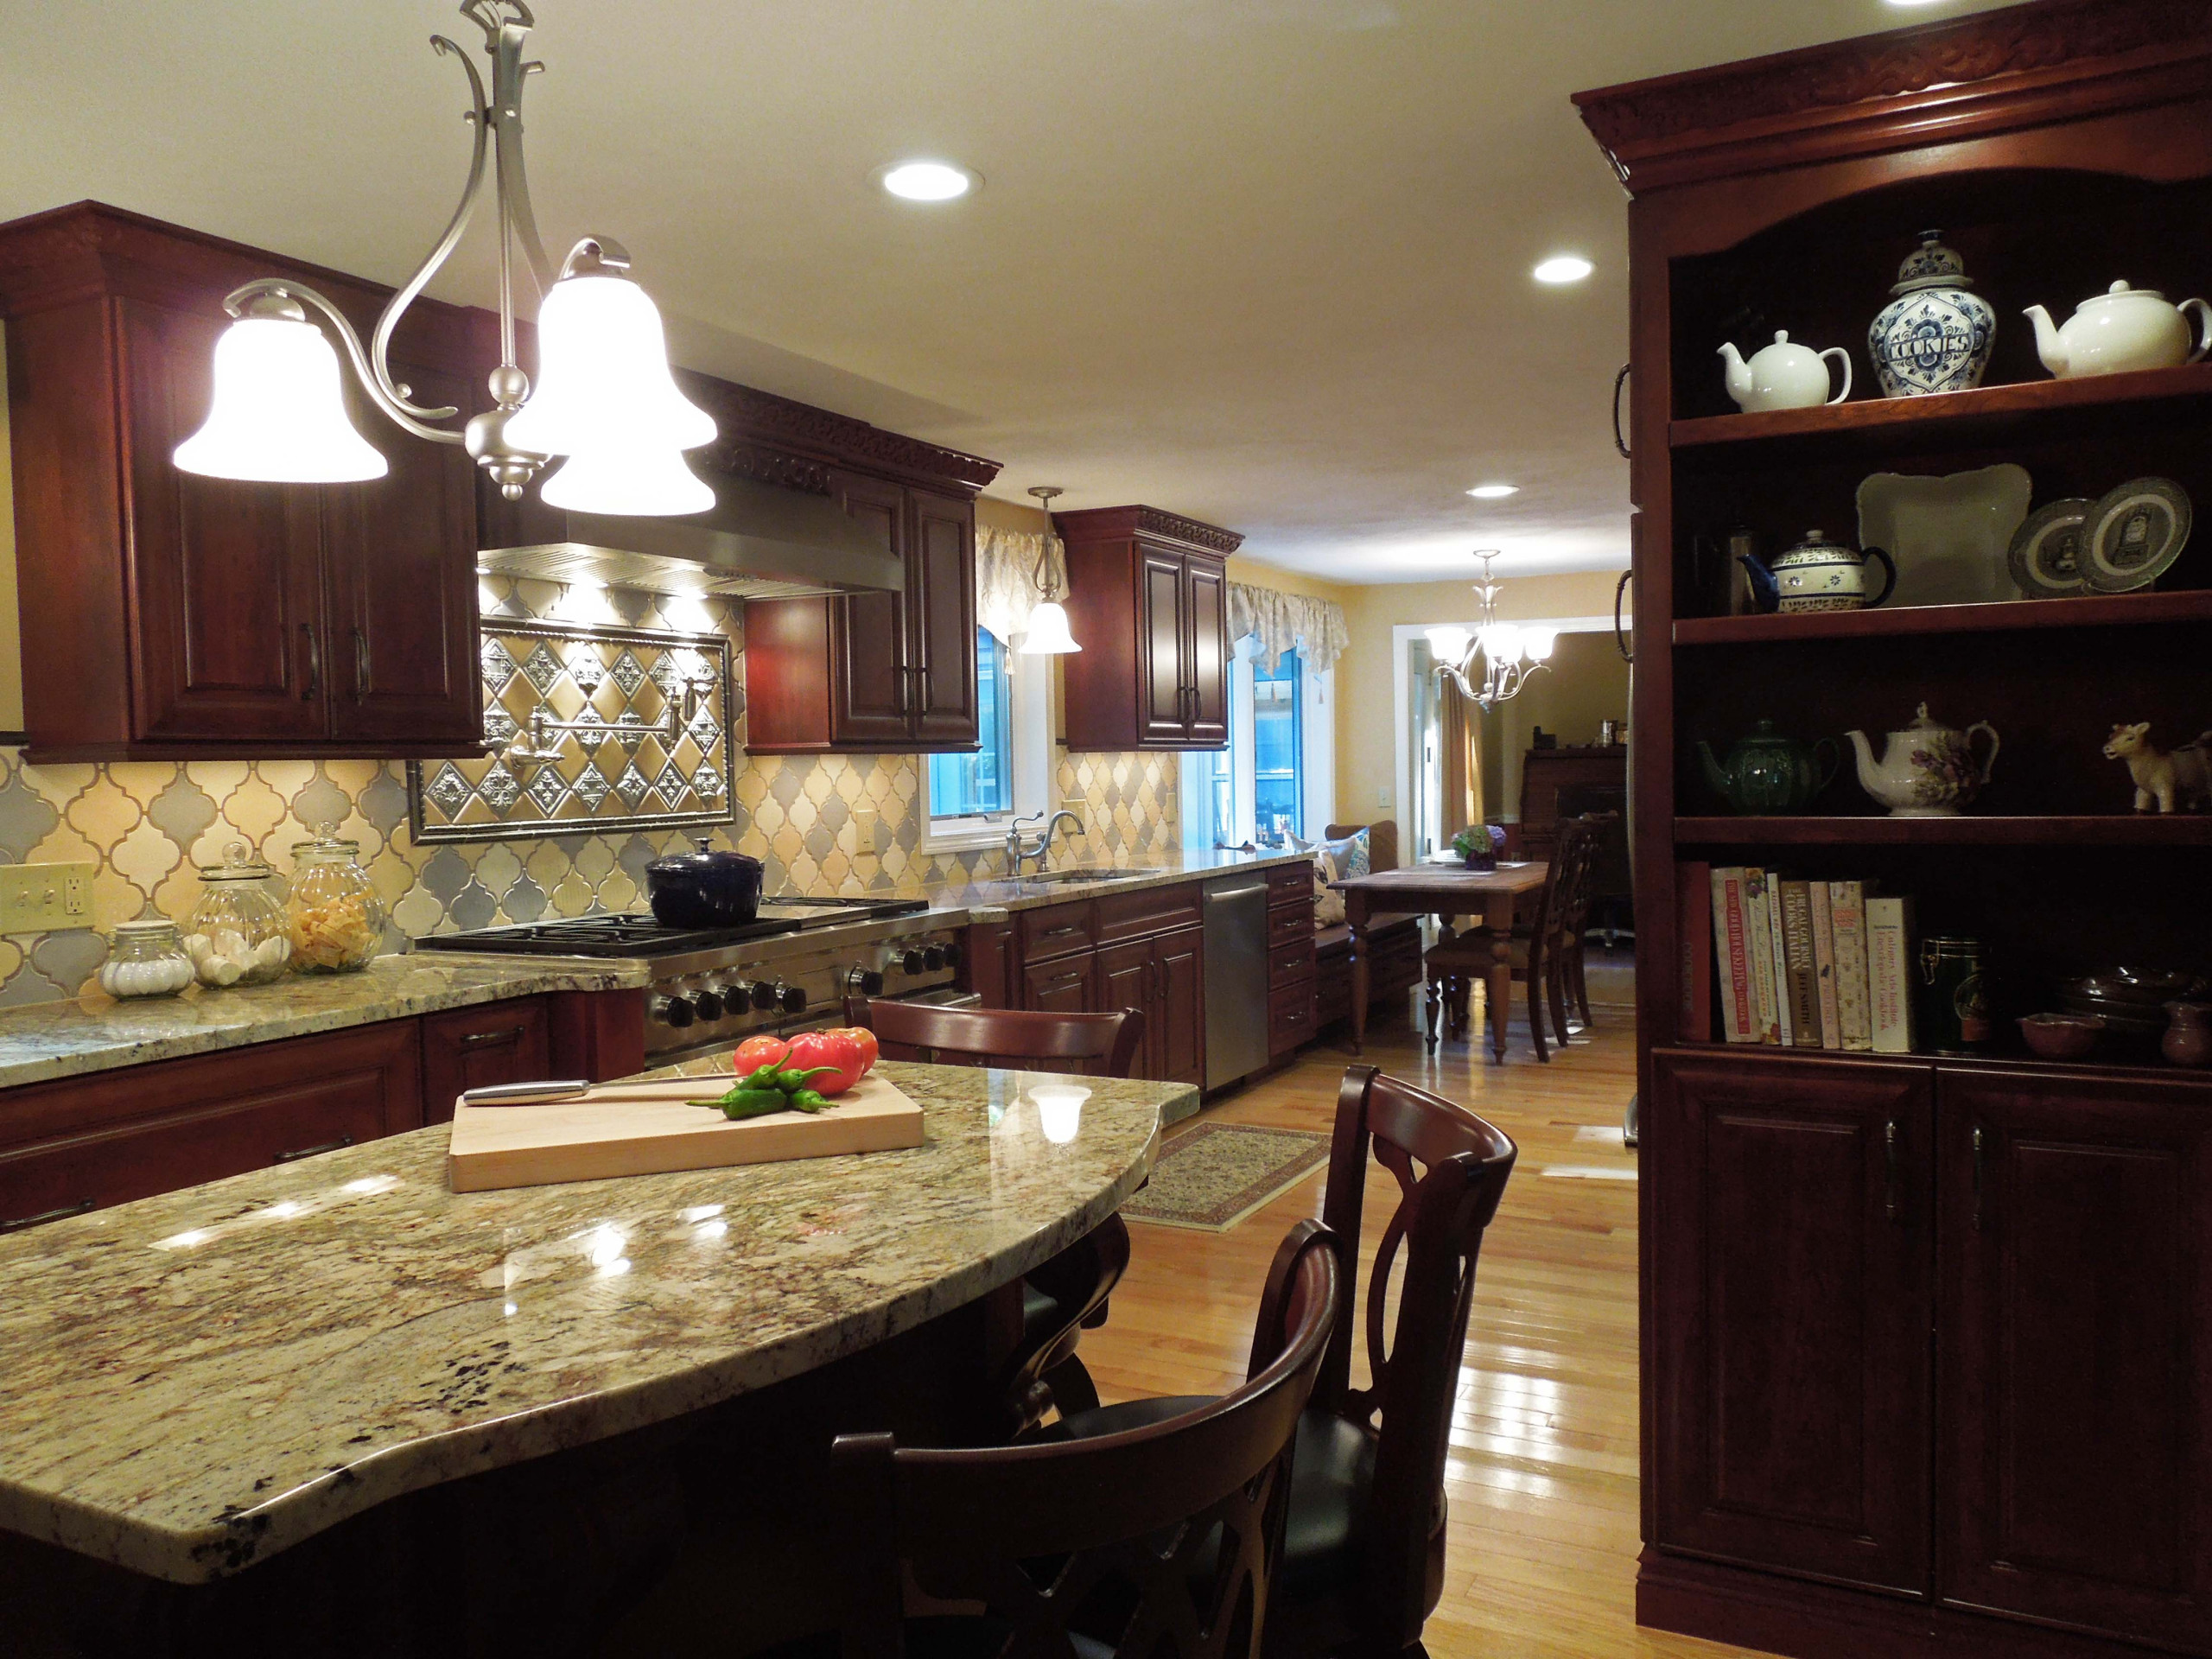 Exquisite Cherry Kitchen full of great details